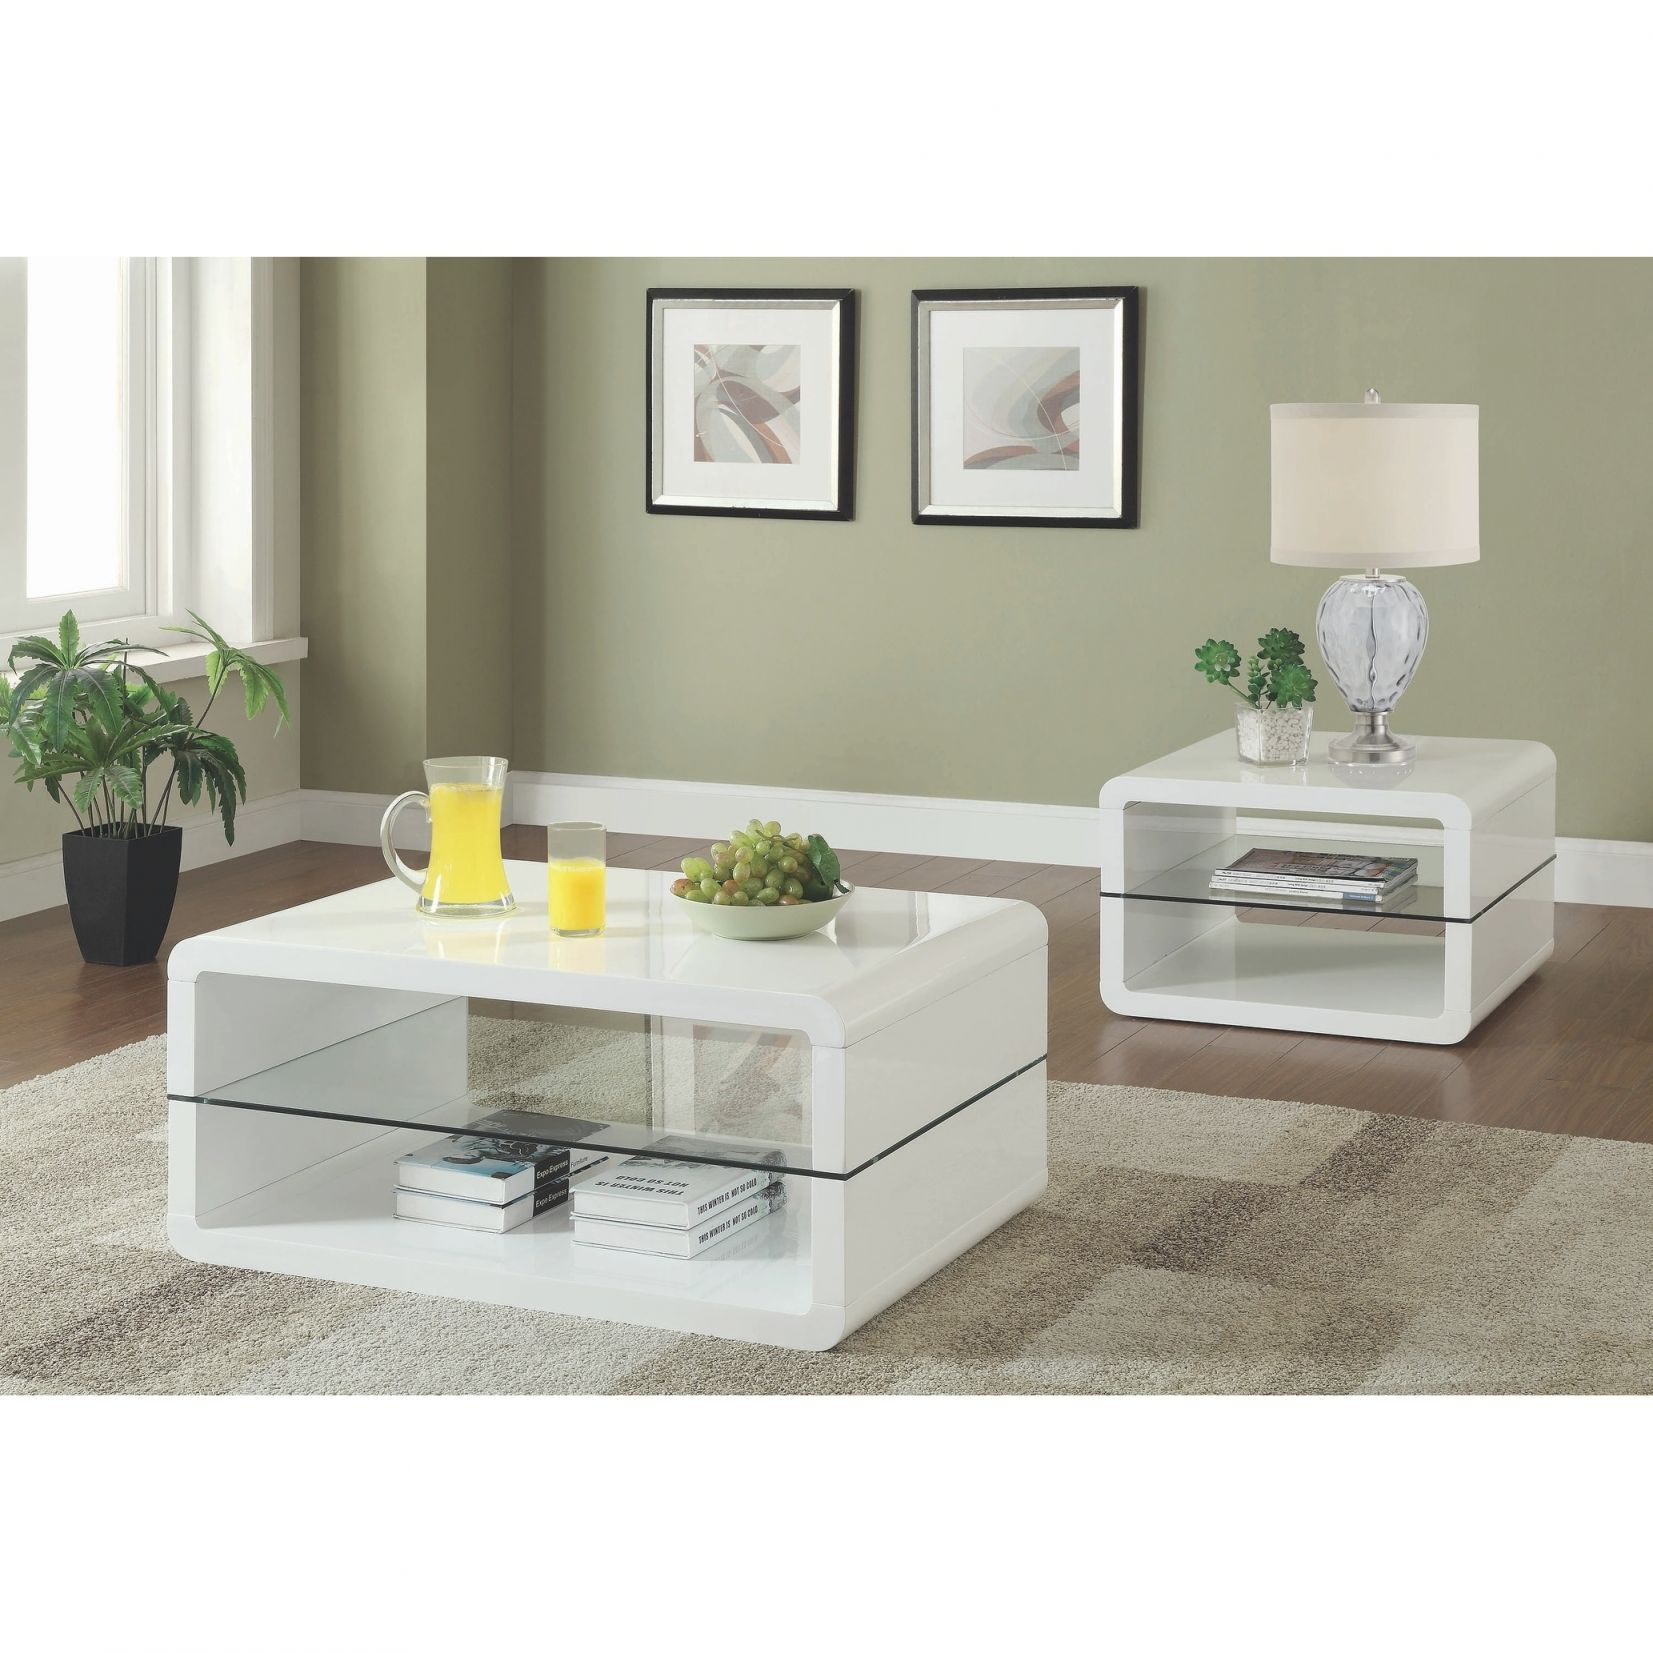 Modern Cube Design Living Room Accent Table Collection With Glass Shelf intended for Accent Tables For Living Room